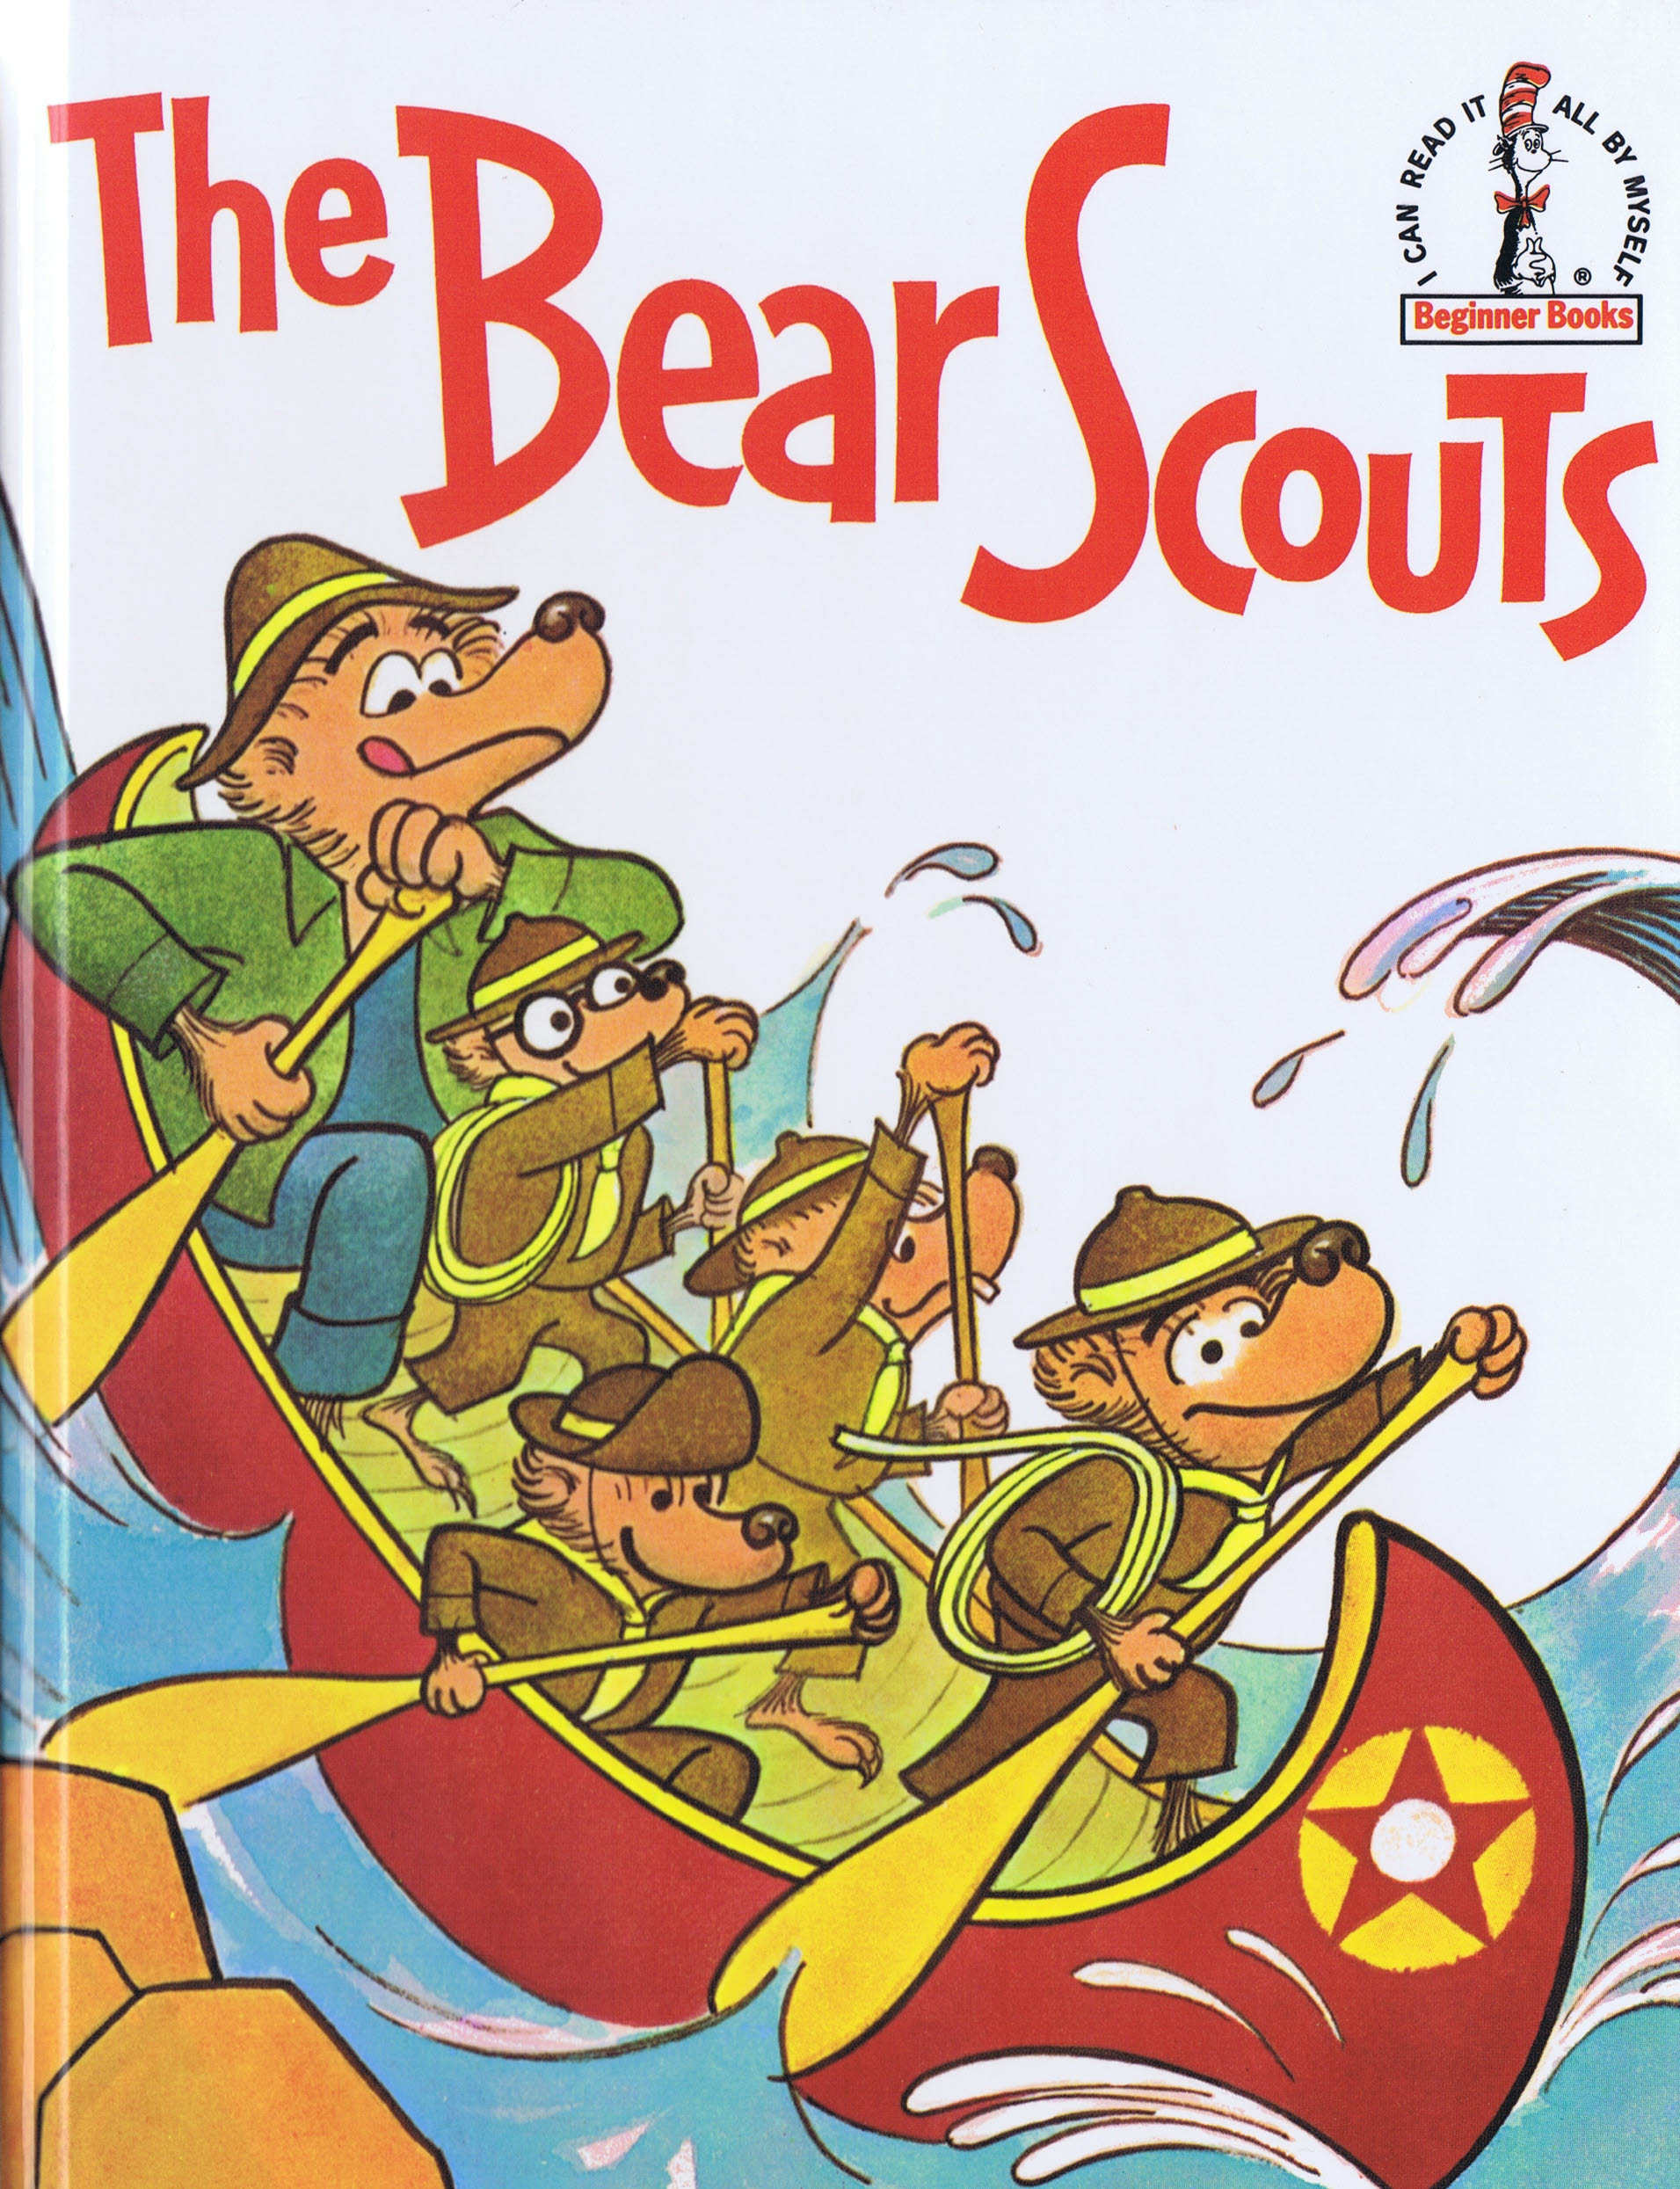 book 4 the bear scouts the berenstain bears blog